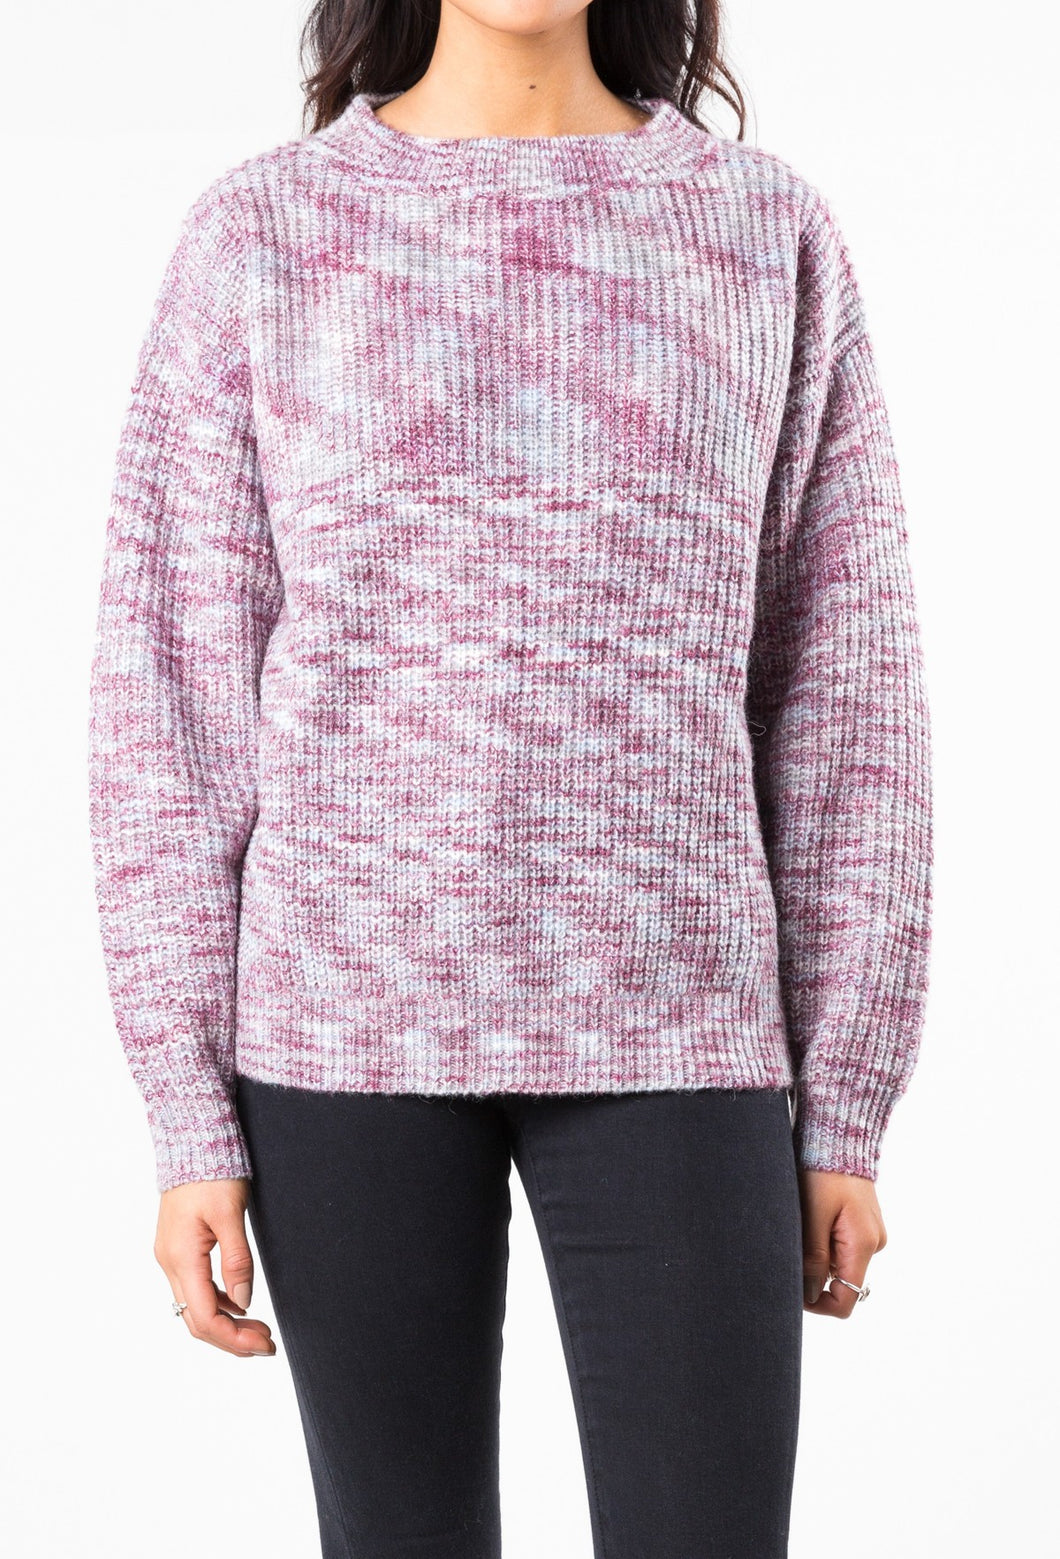 MASH CREW NECK KNIT - MULTI